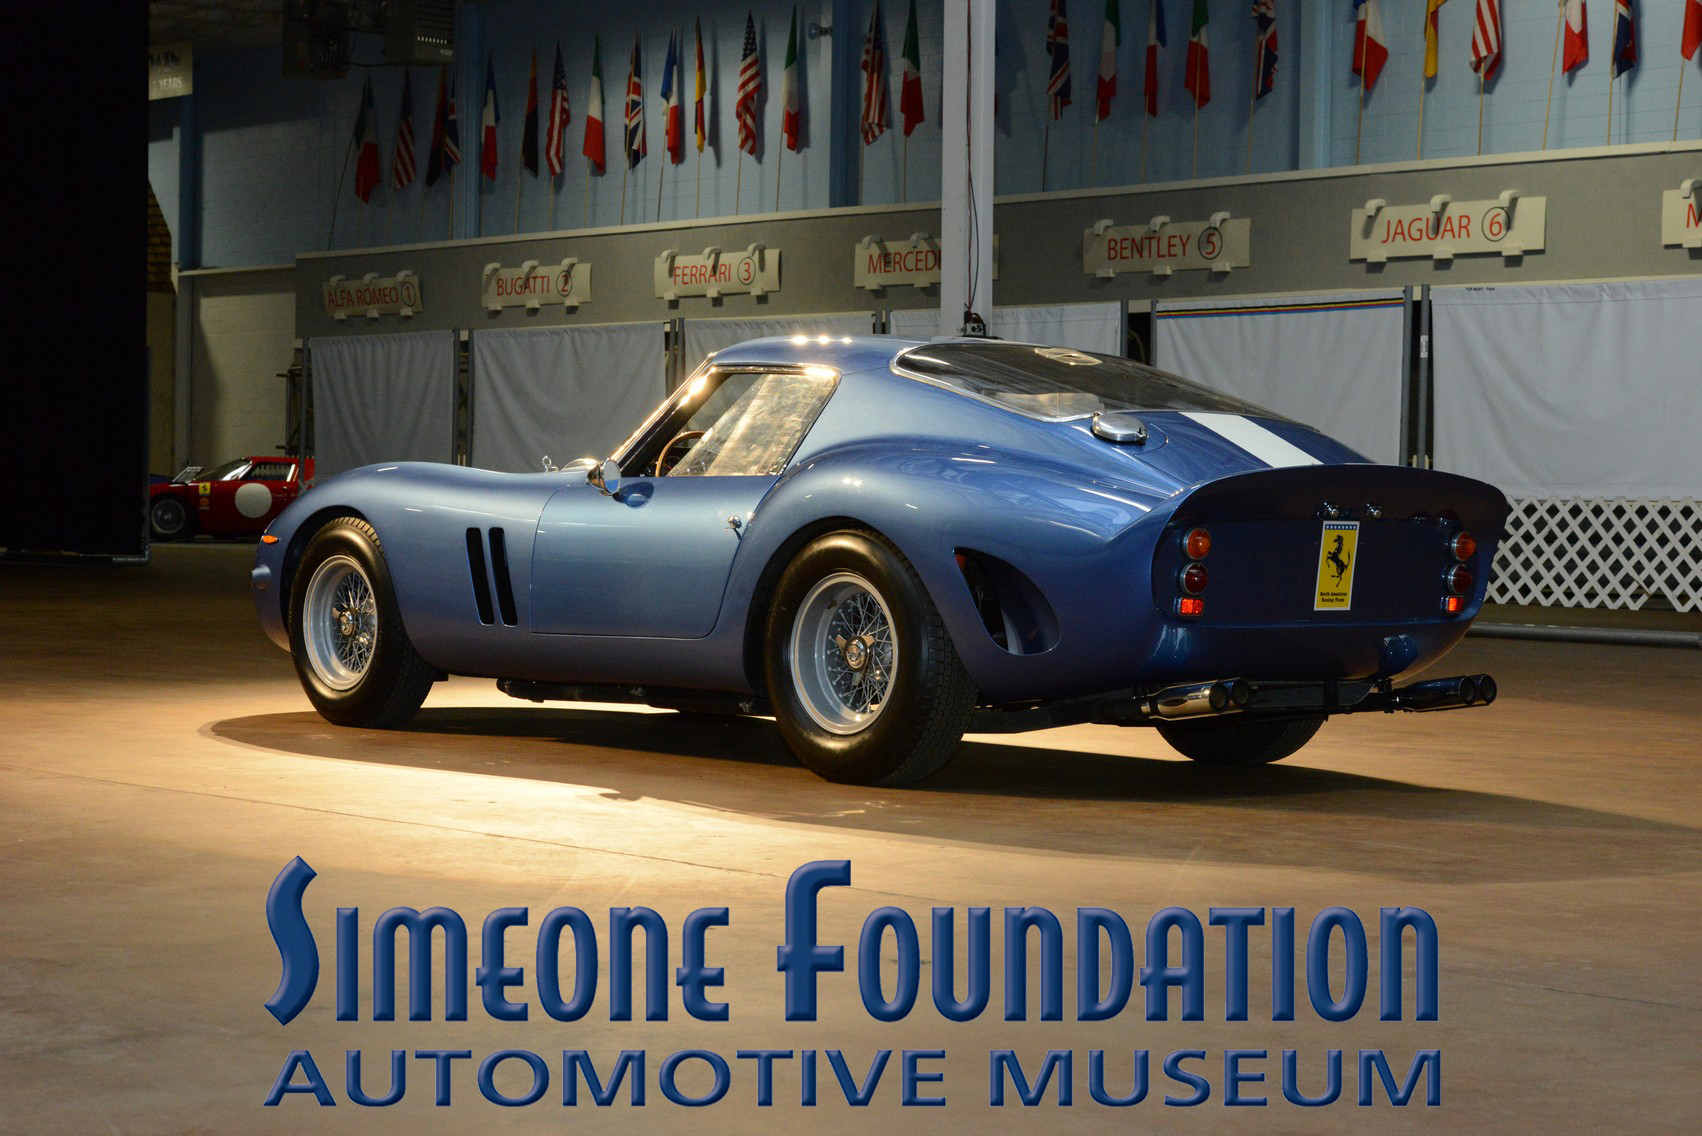 Early Lease Termination >> Day at the Museum: Simeone Automotive Museum   Premier